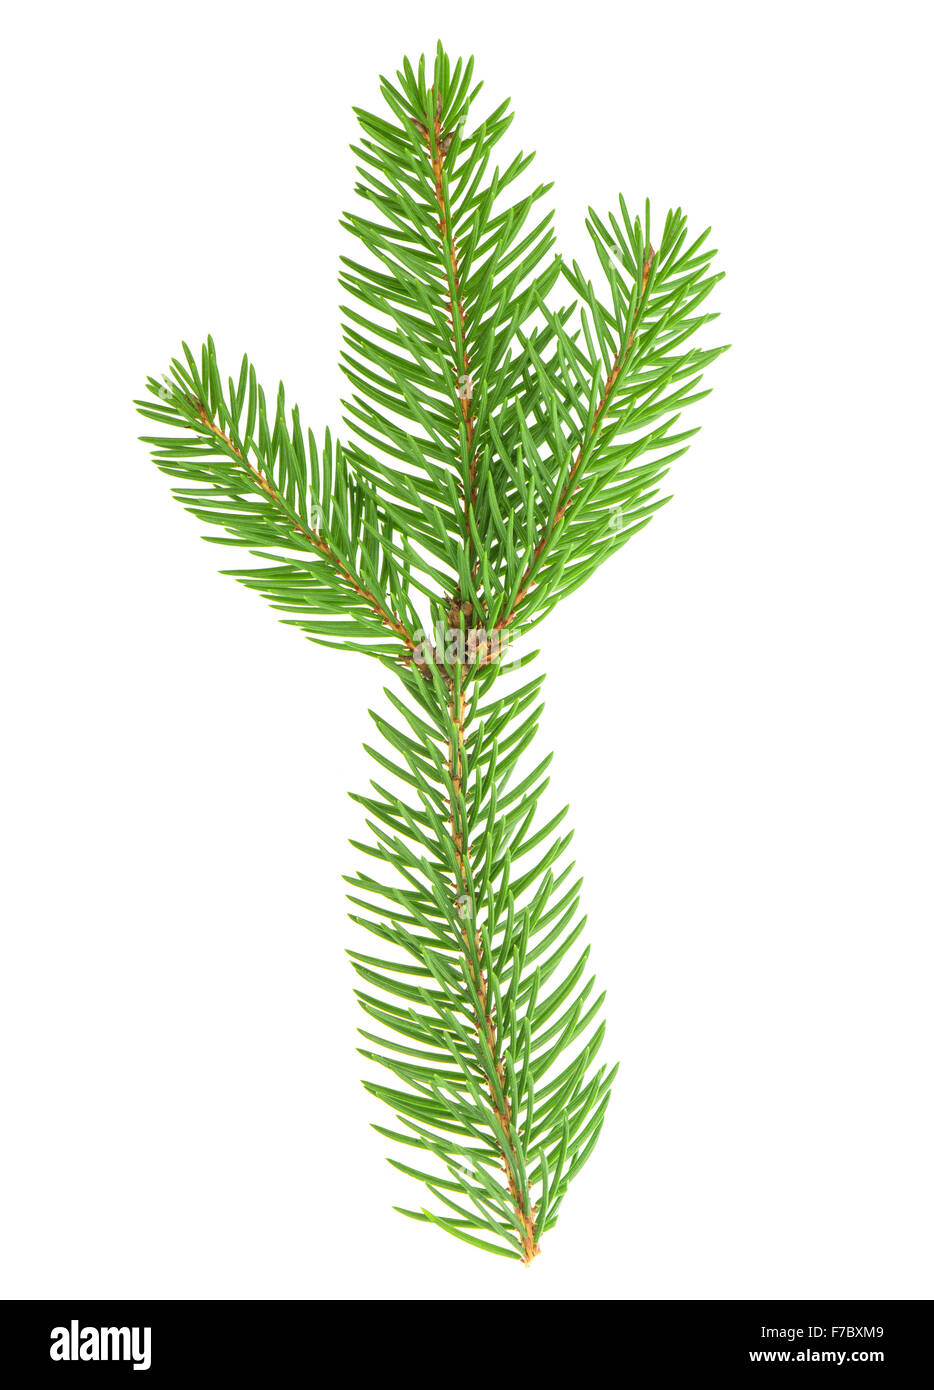 Spruce twig isolated on white background. Evergreen plant - Stock Image